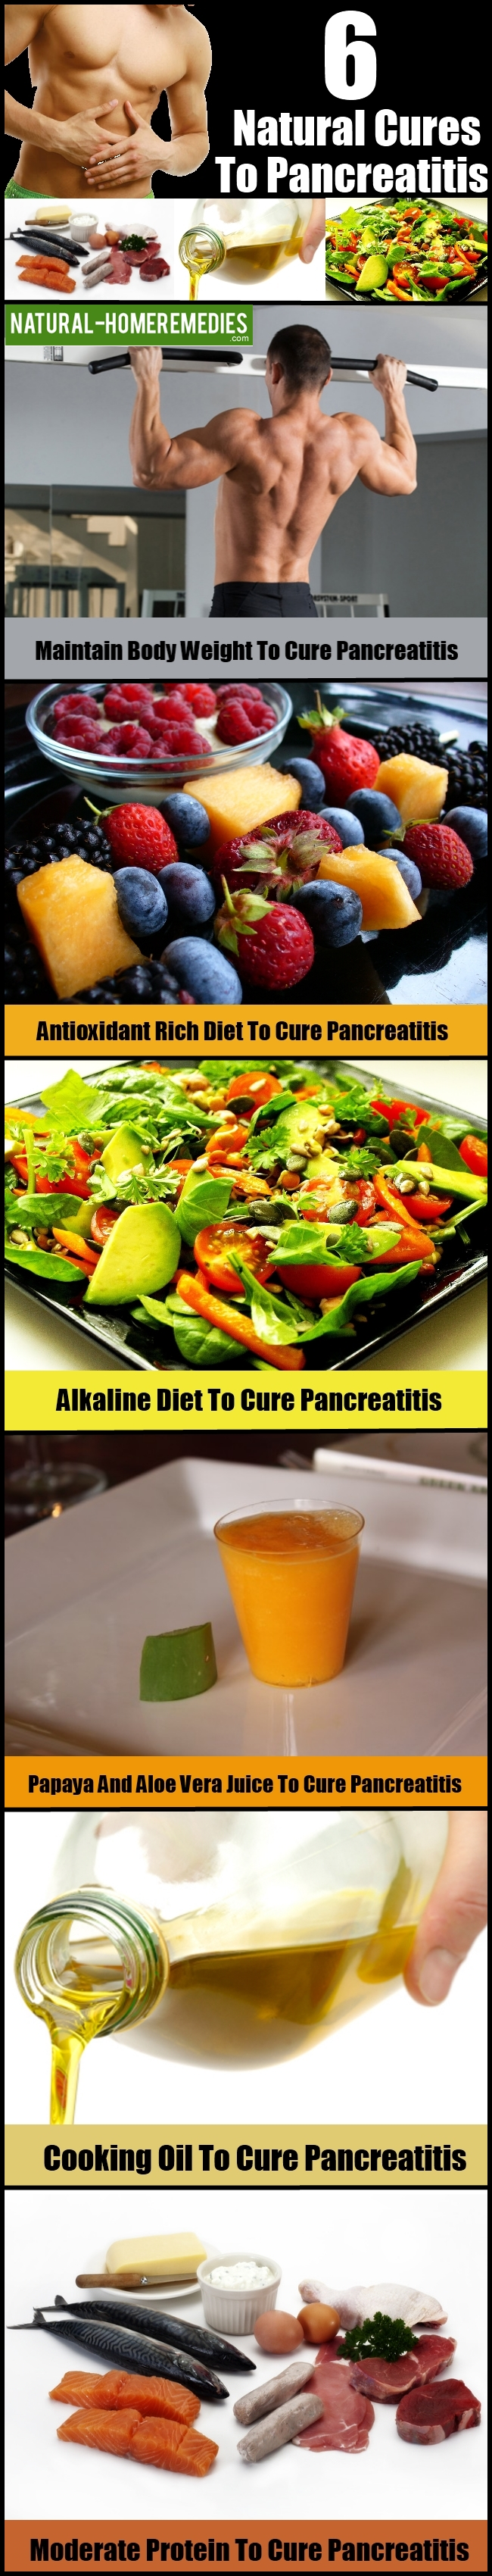 6 Natural Cures To Pancreatitis